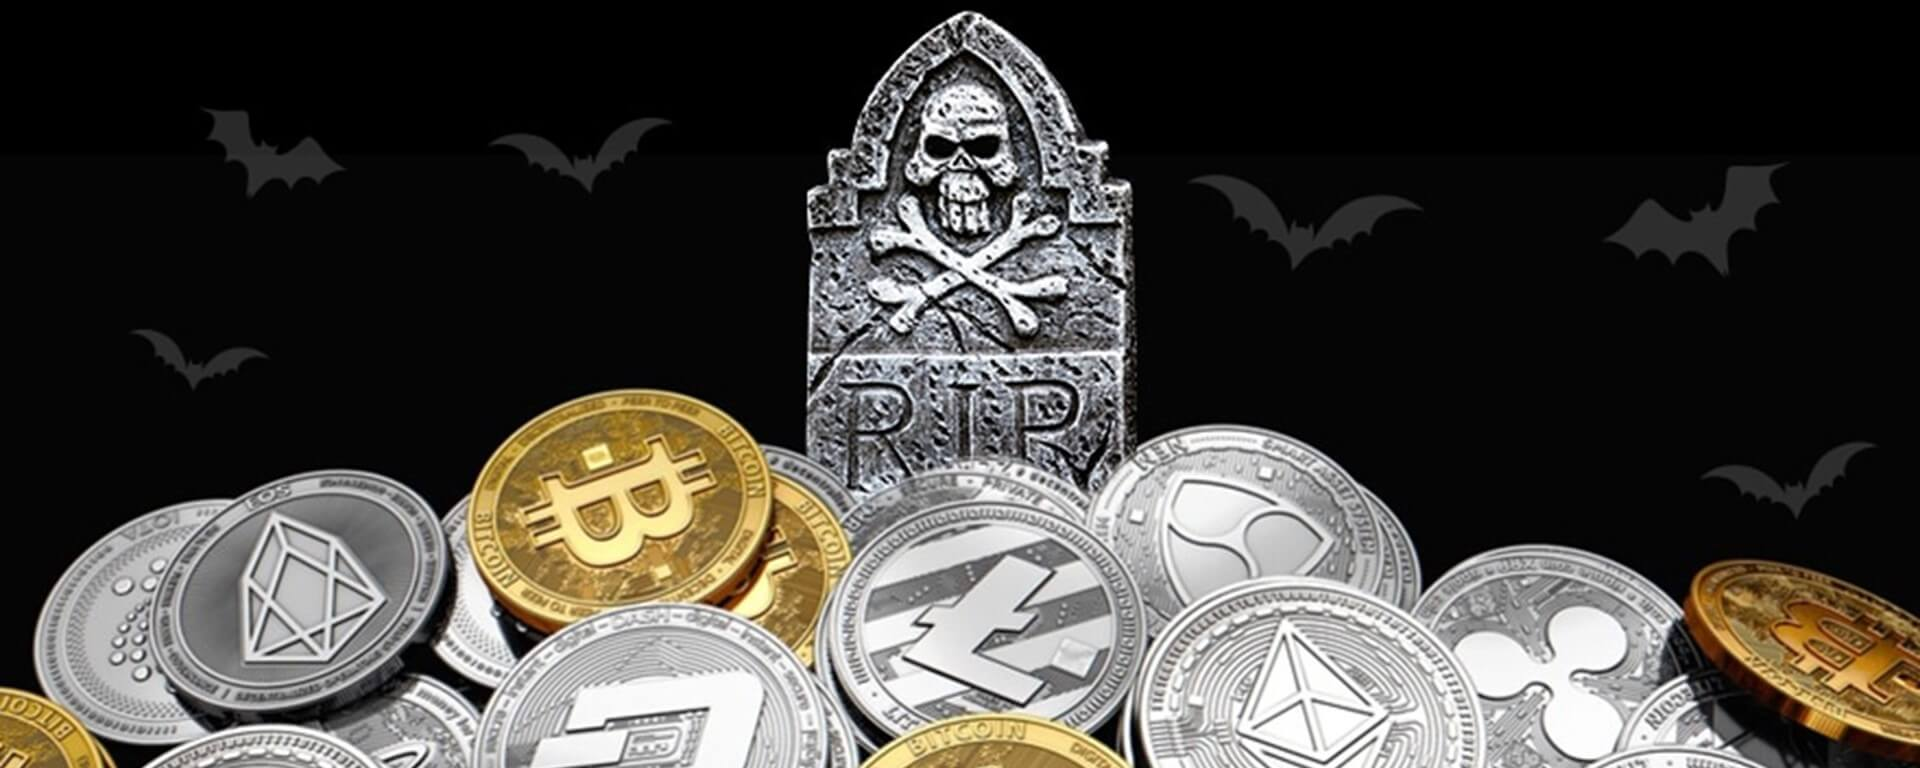 Altcoins lose more than $ 4 billion in market capitalization as Bitcoin rises 19